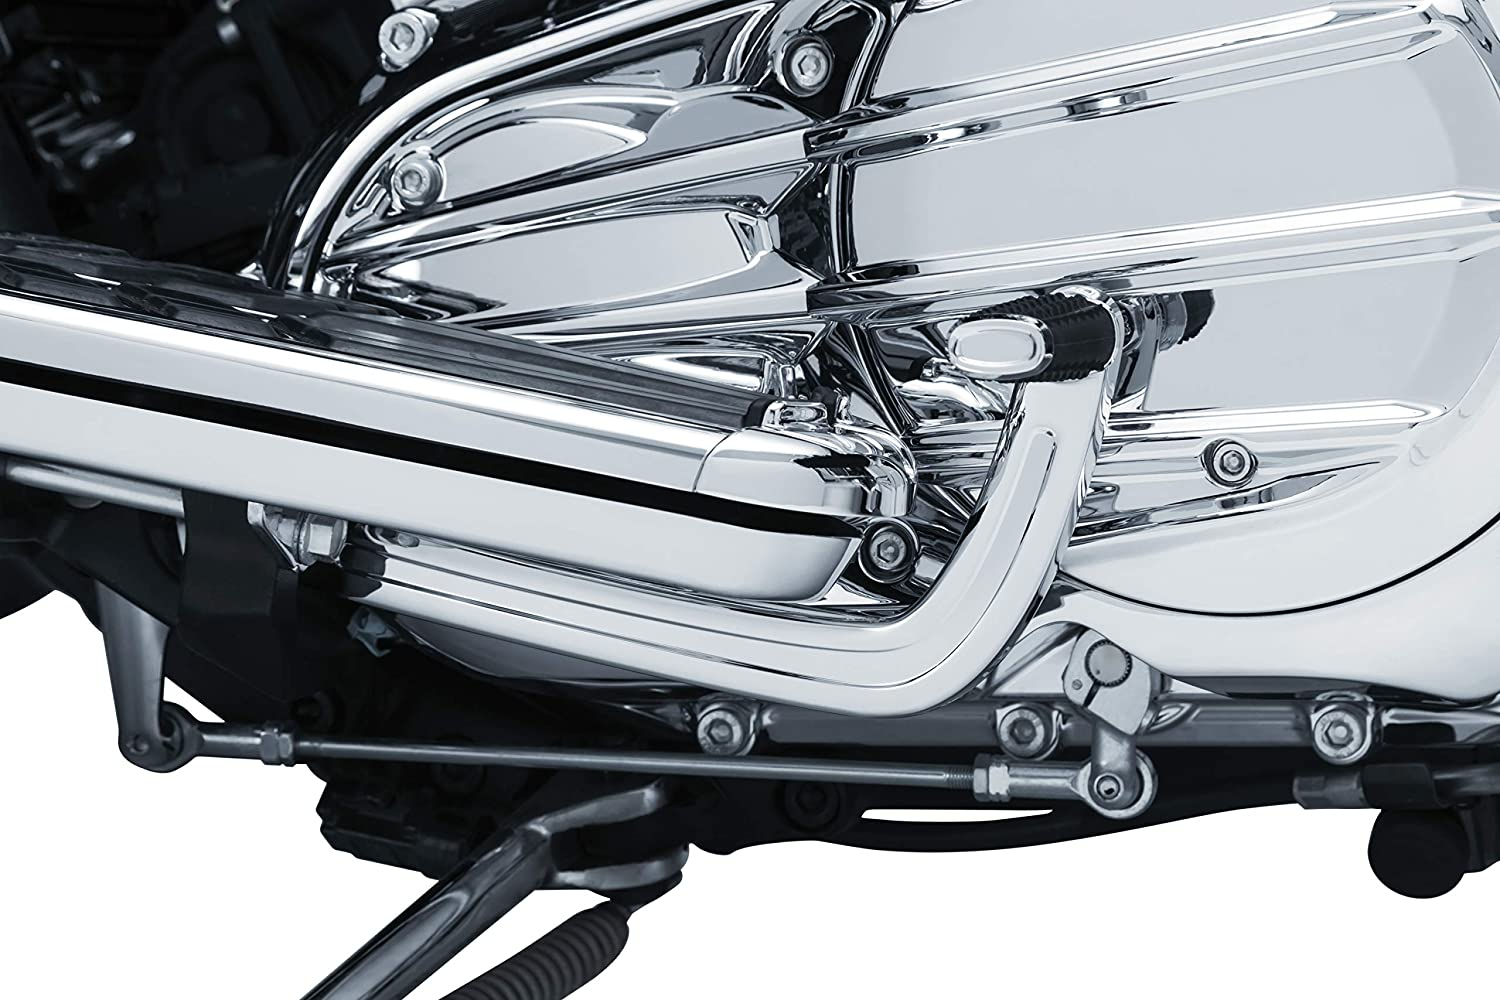 Chrome Heel Shift Lever for 2014-19 Indian Motorcycles Kuryakyn 5649 Motorcycle Foot Control Component